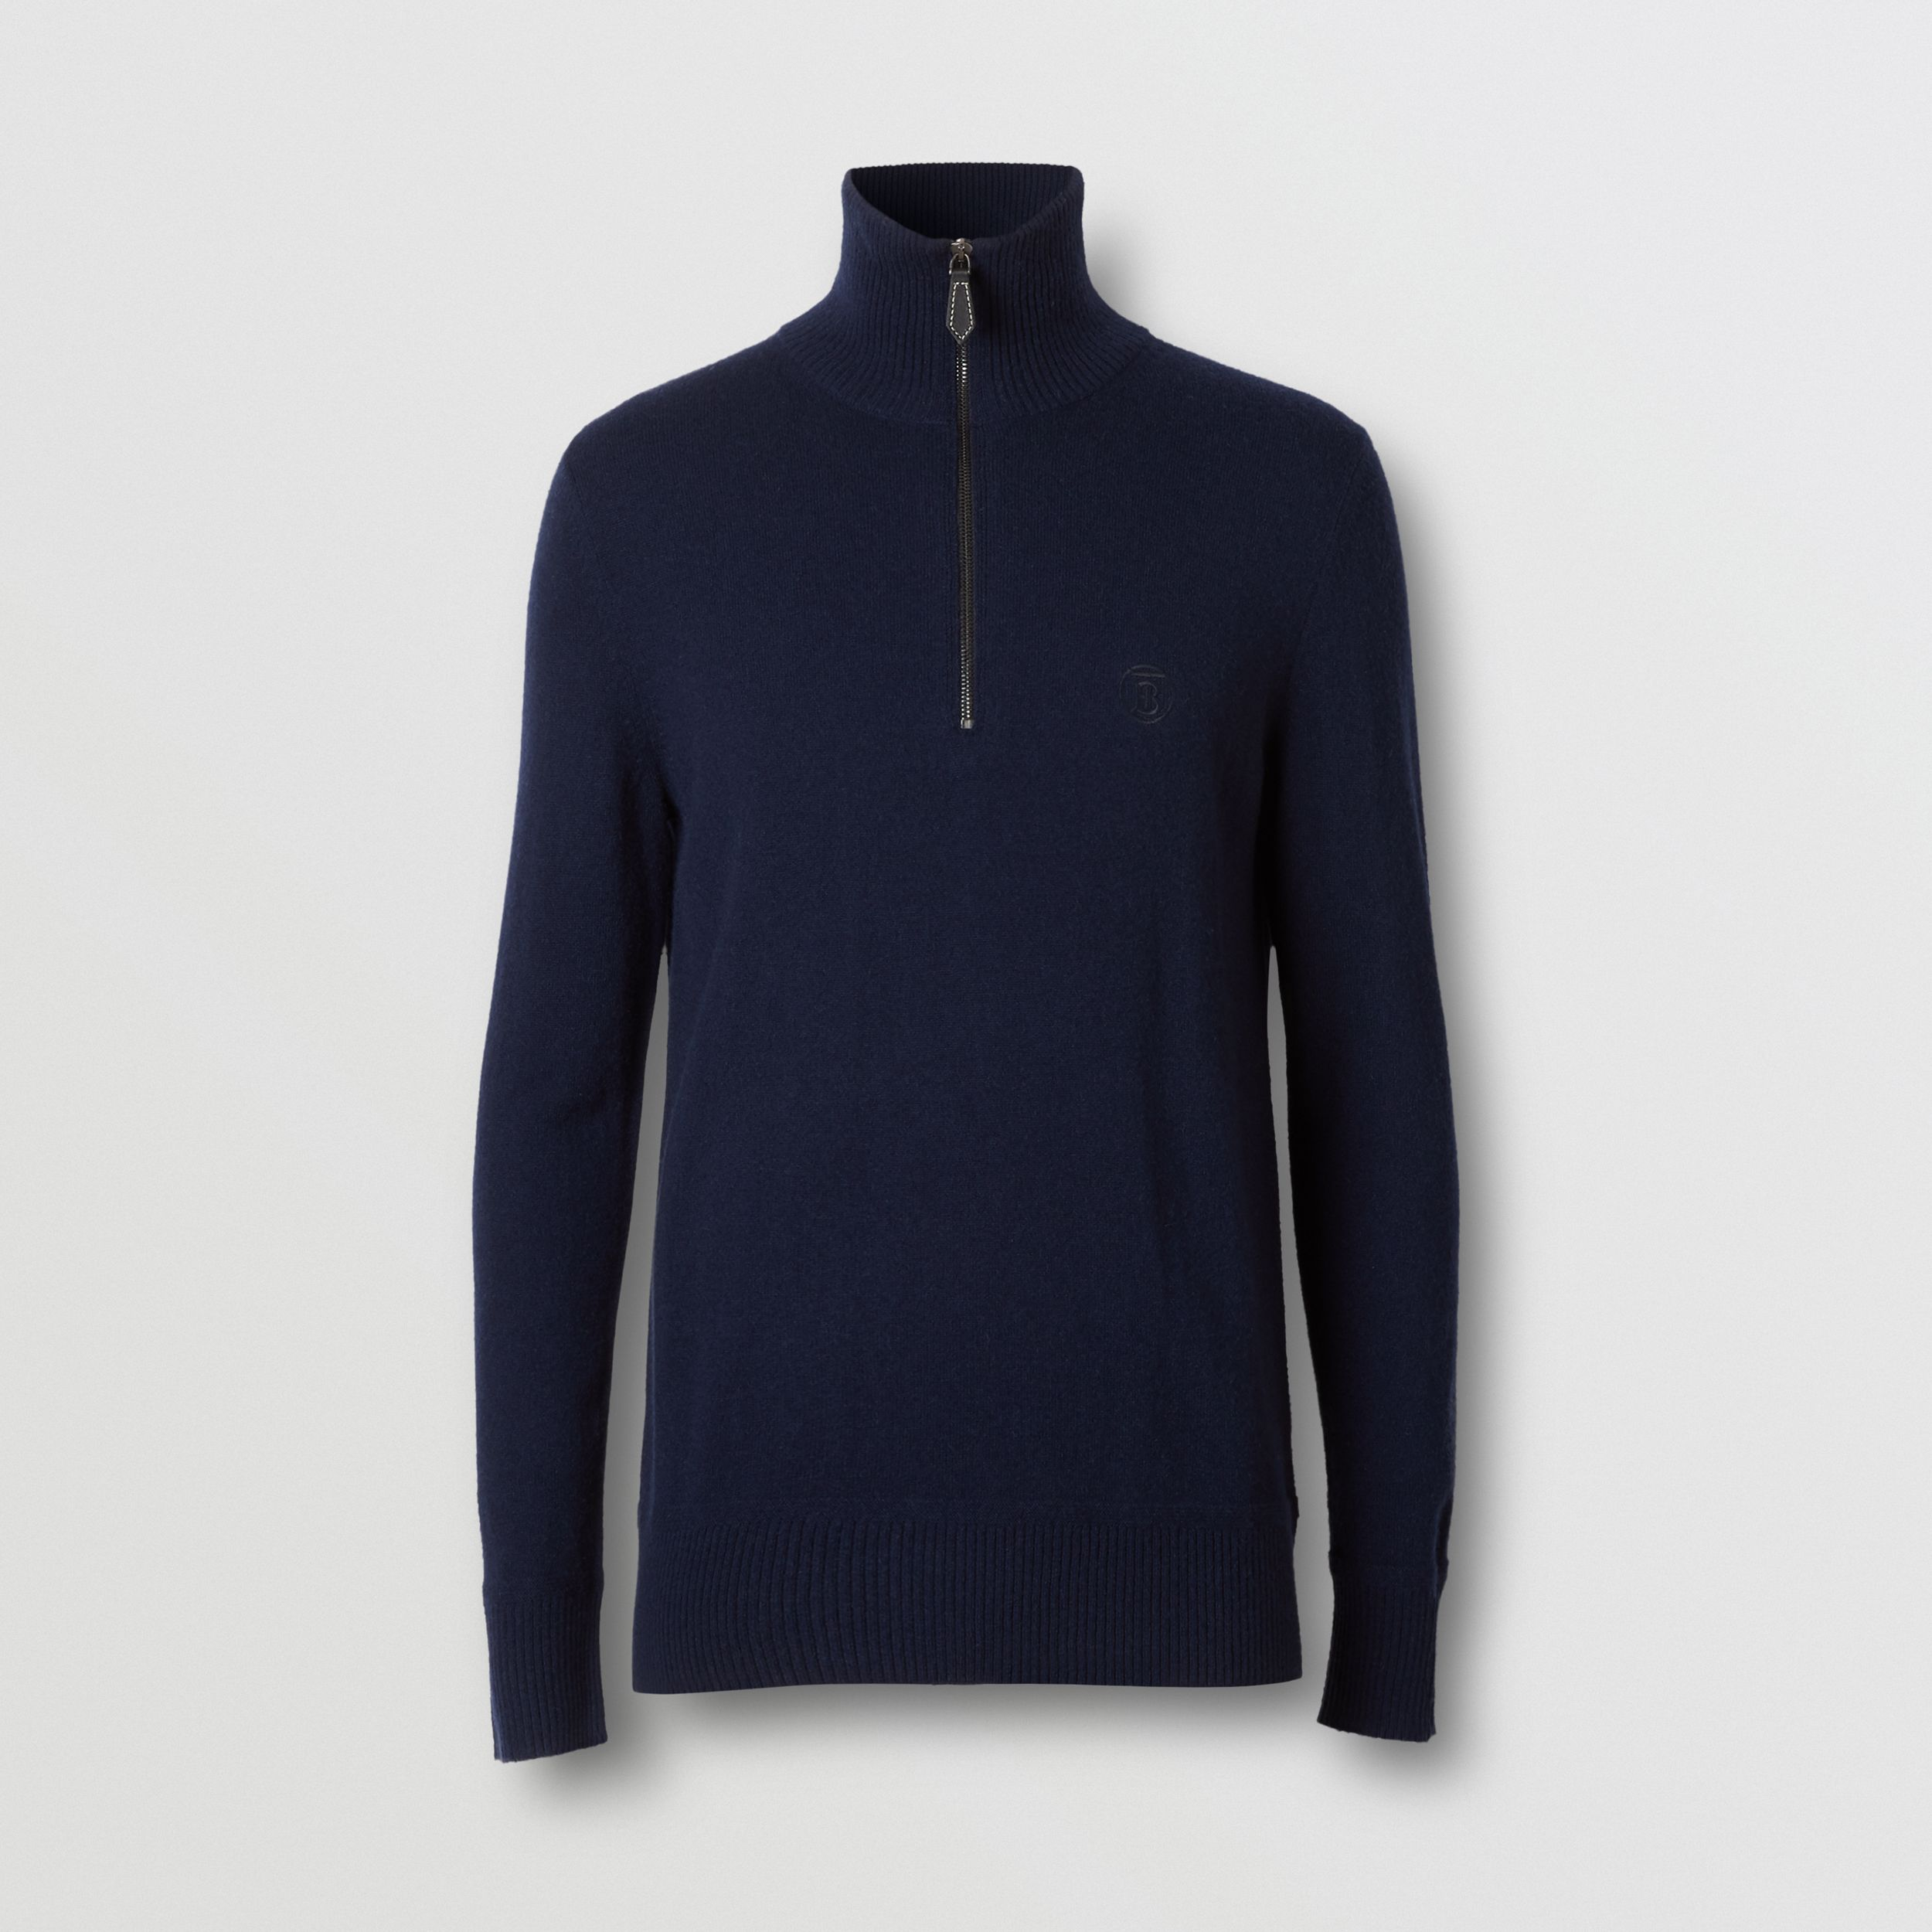 Monogram Motif Cashmere Funnel Neck Sweater in Navy - Men | Burberry - 4